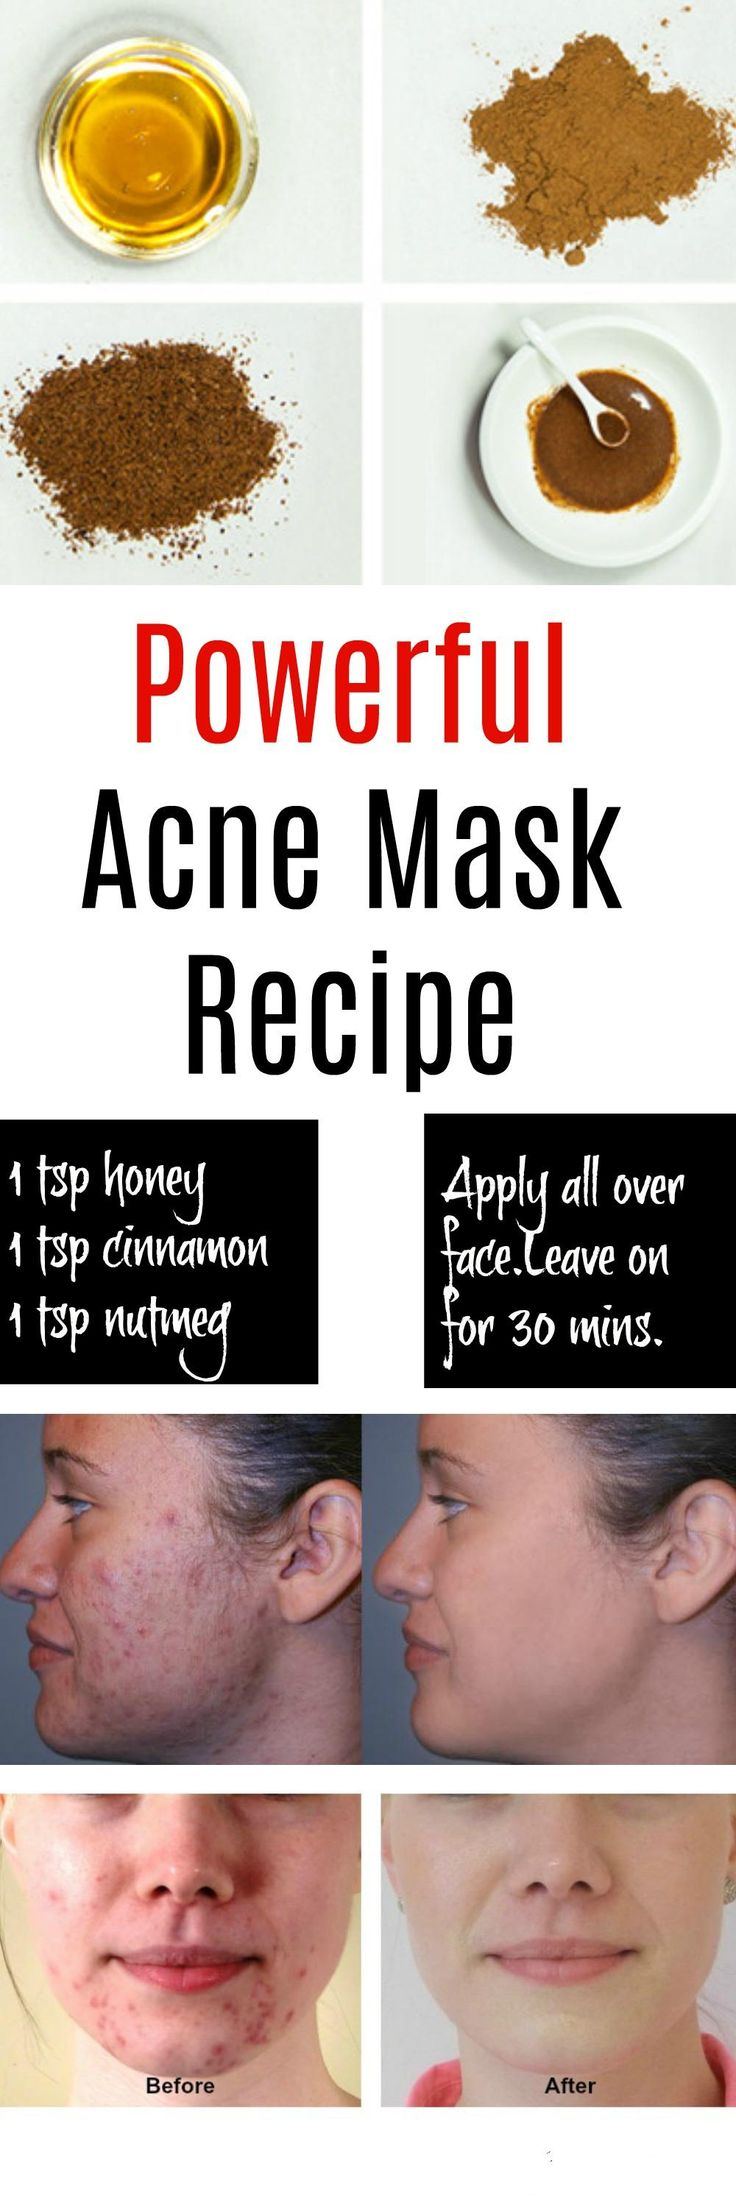 Natural Acne Mask Recipe This natural acne mask works really well, especially for stubborn acne and cysts because of its powerful ingredients: honey, cinnamon, and nutmeg. Let's take a closer look as to why these ingredients are so beneficial to fight acne.